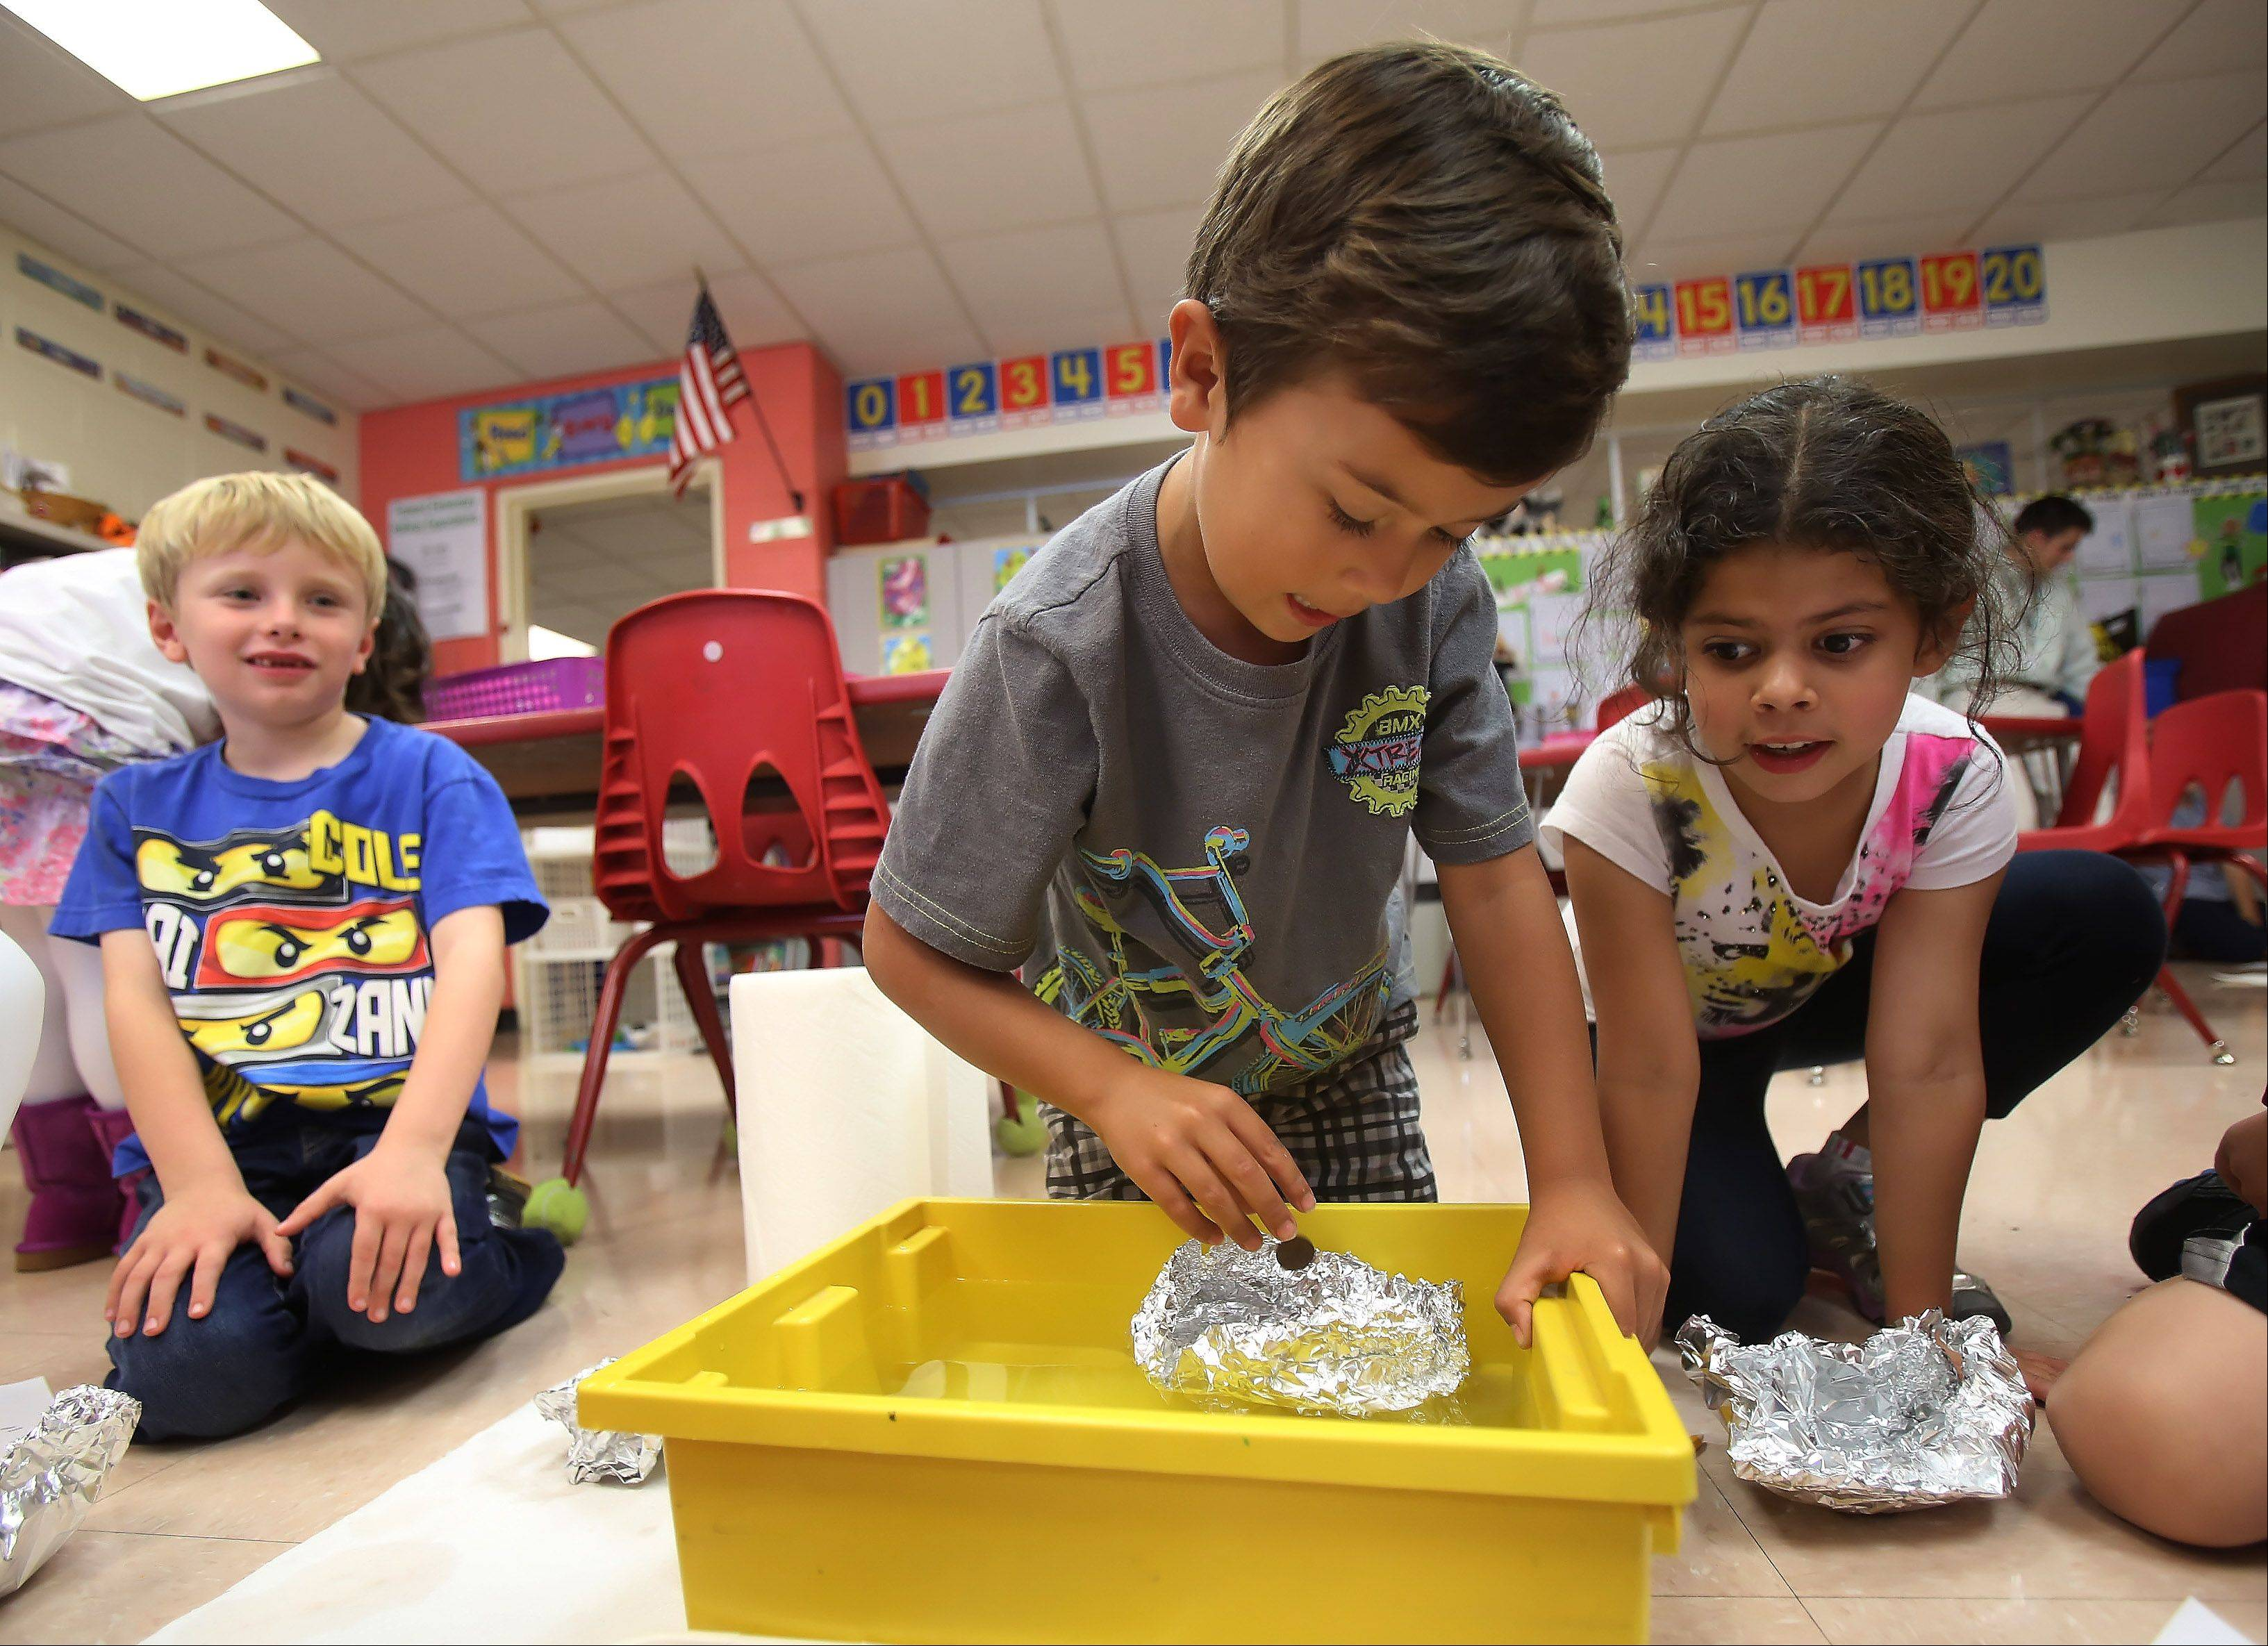 First graders Kristian Garcia, center, and Lucia Buckley, from Laura McCathy's class, place pennies in a boat as they conduct experiments Tuesday at Fremont Elementary School in Mundelein. As part of a Columbus Day project, students designed boats to hold as many pennies as they could until they sank.